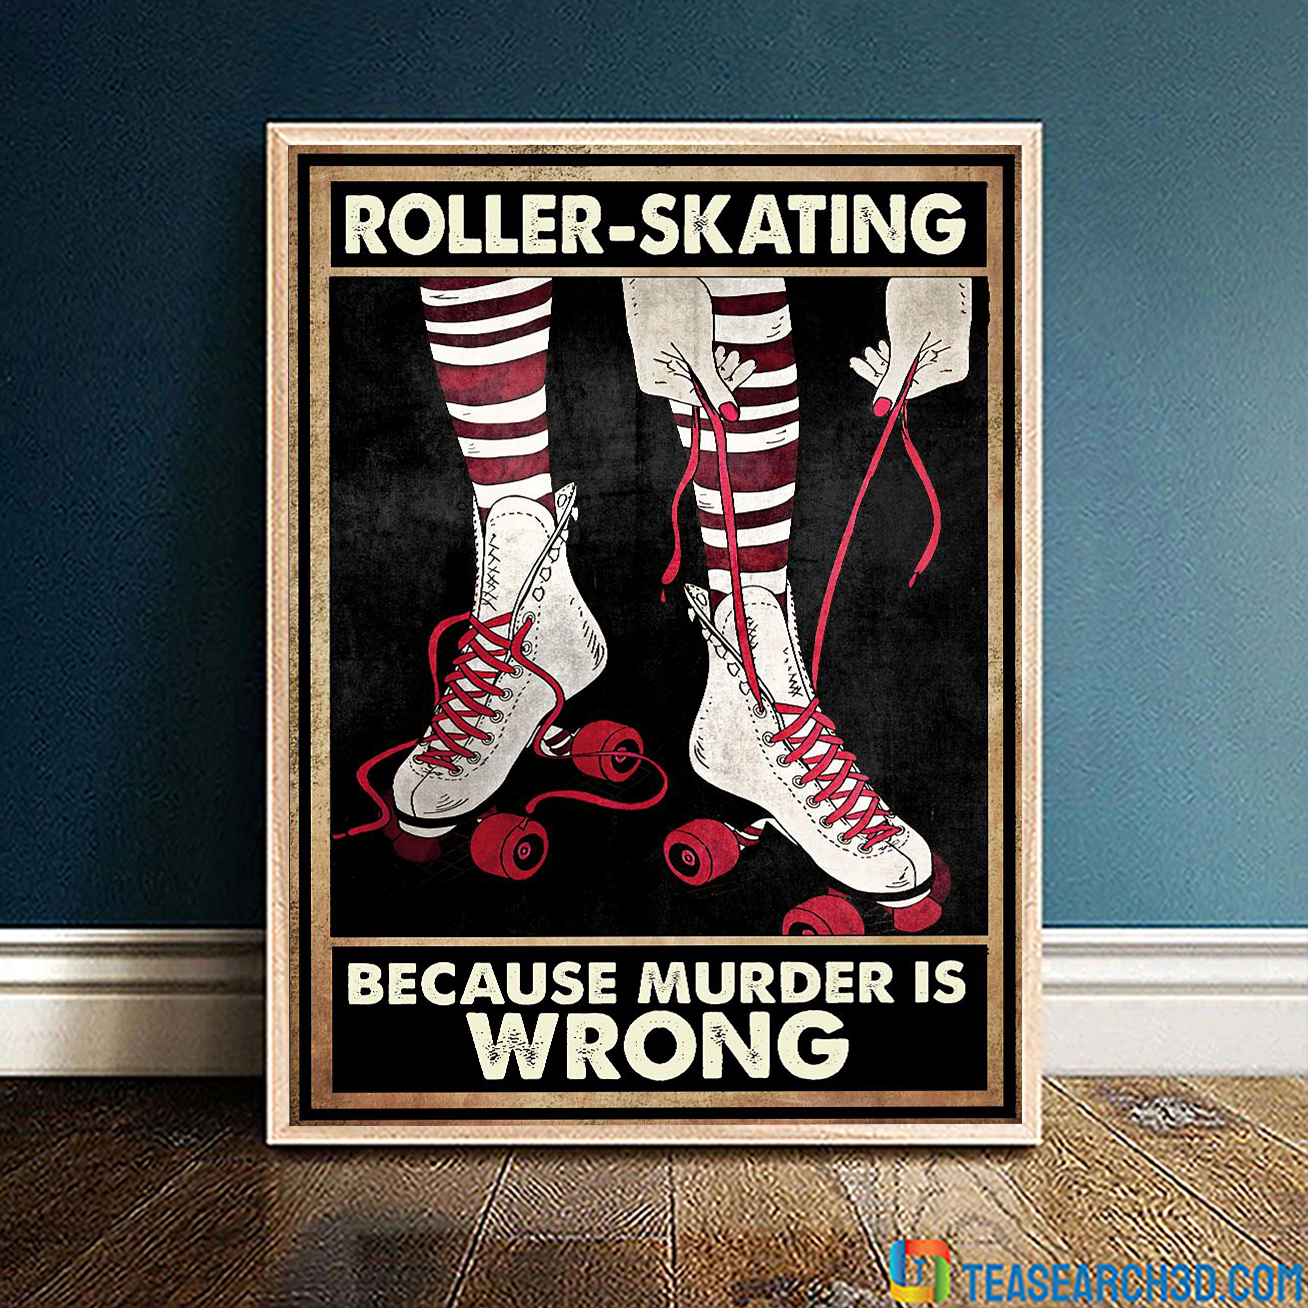 Roller skating because murder is wrong poster A1